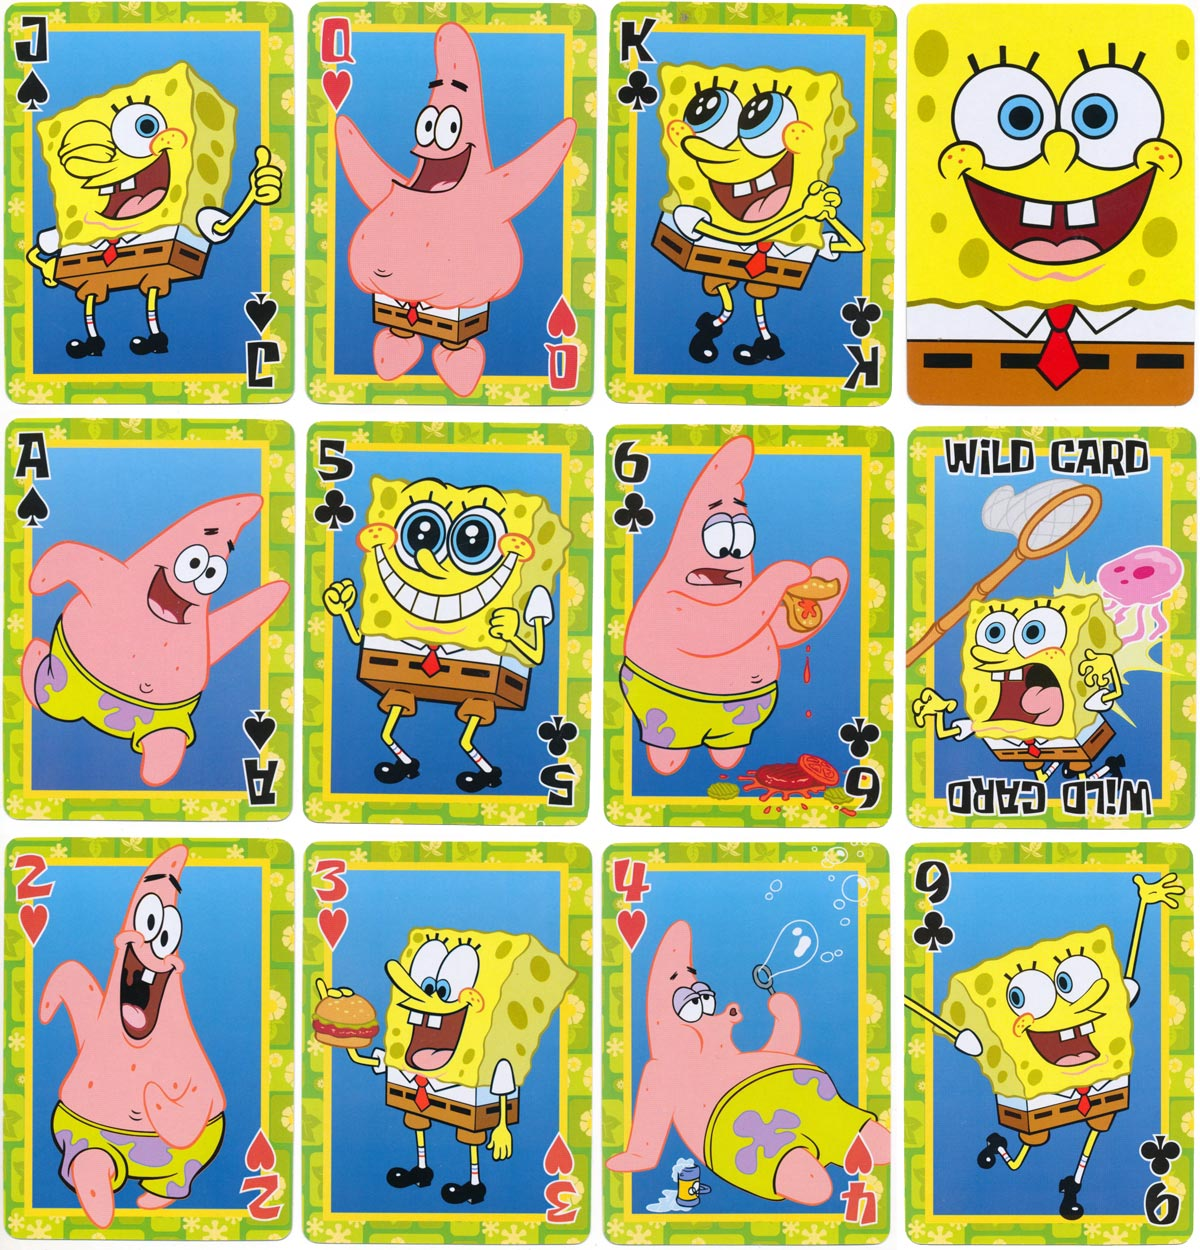 SpongeBob SquarePants cartoon playing cards featuring SpongeBob and Patrick the star fish